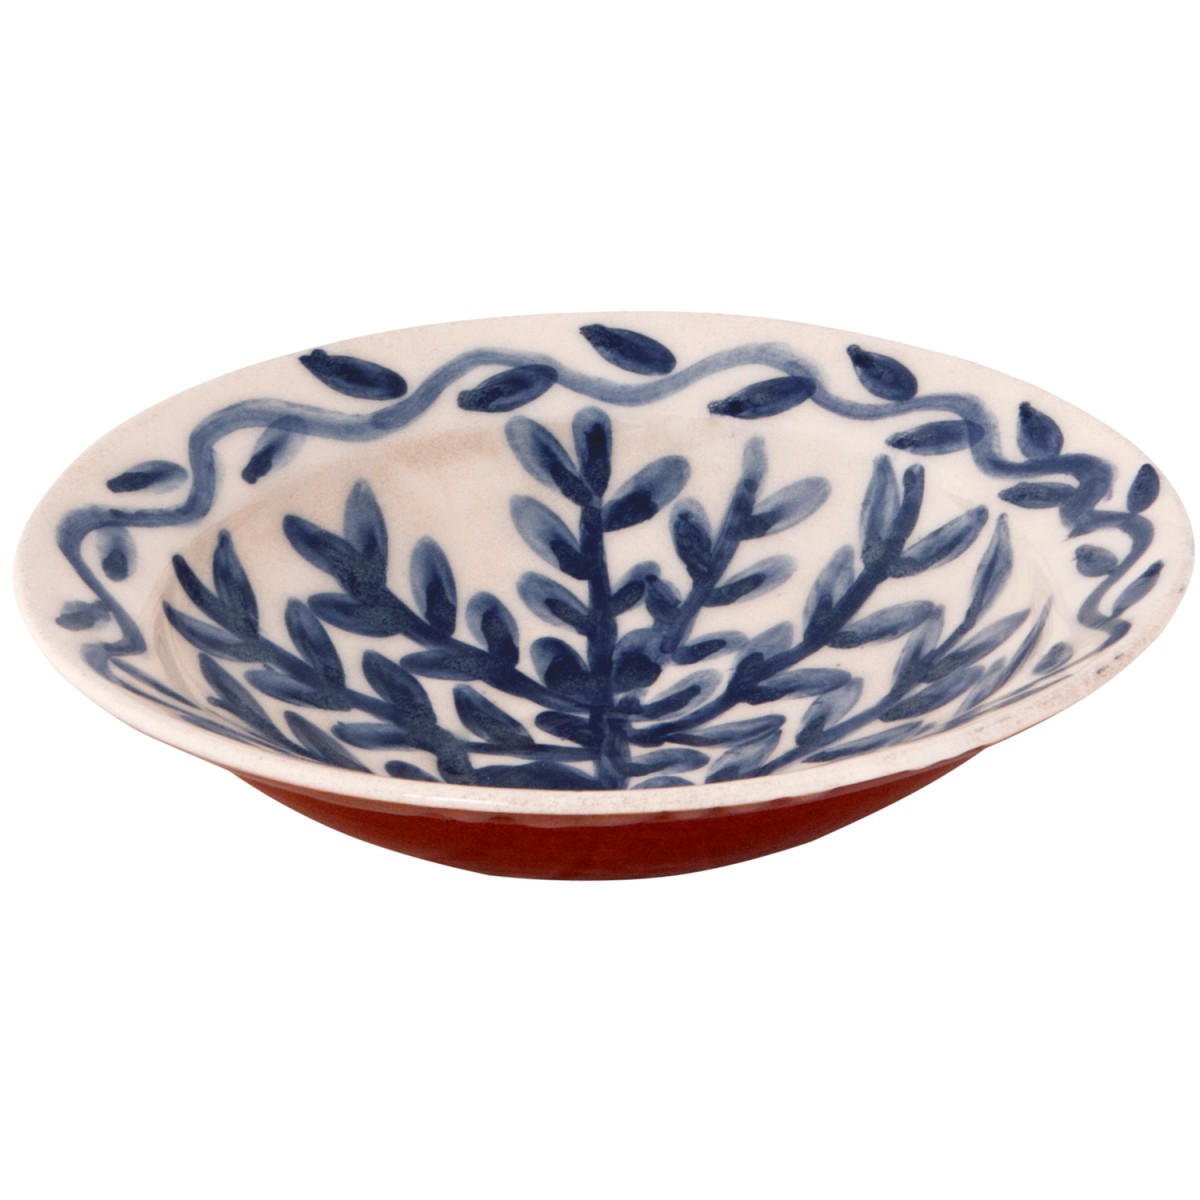 Large decorative bowls for tables-Toile-1